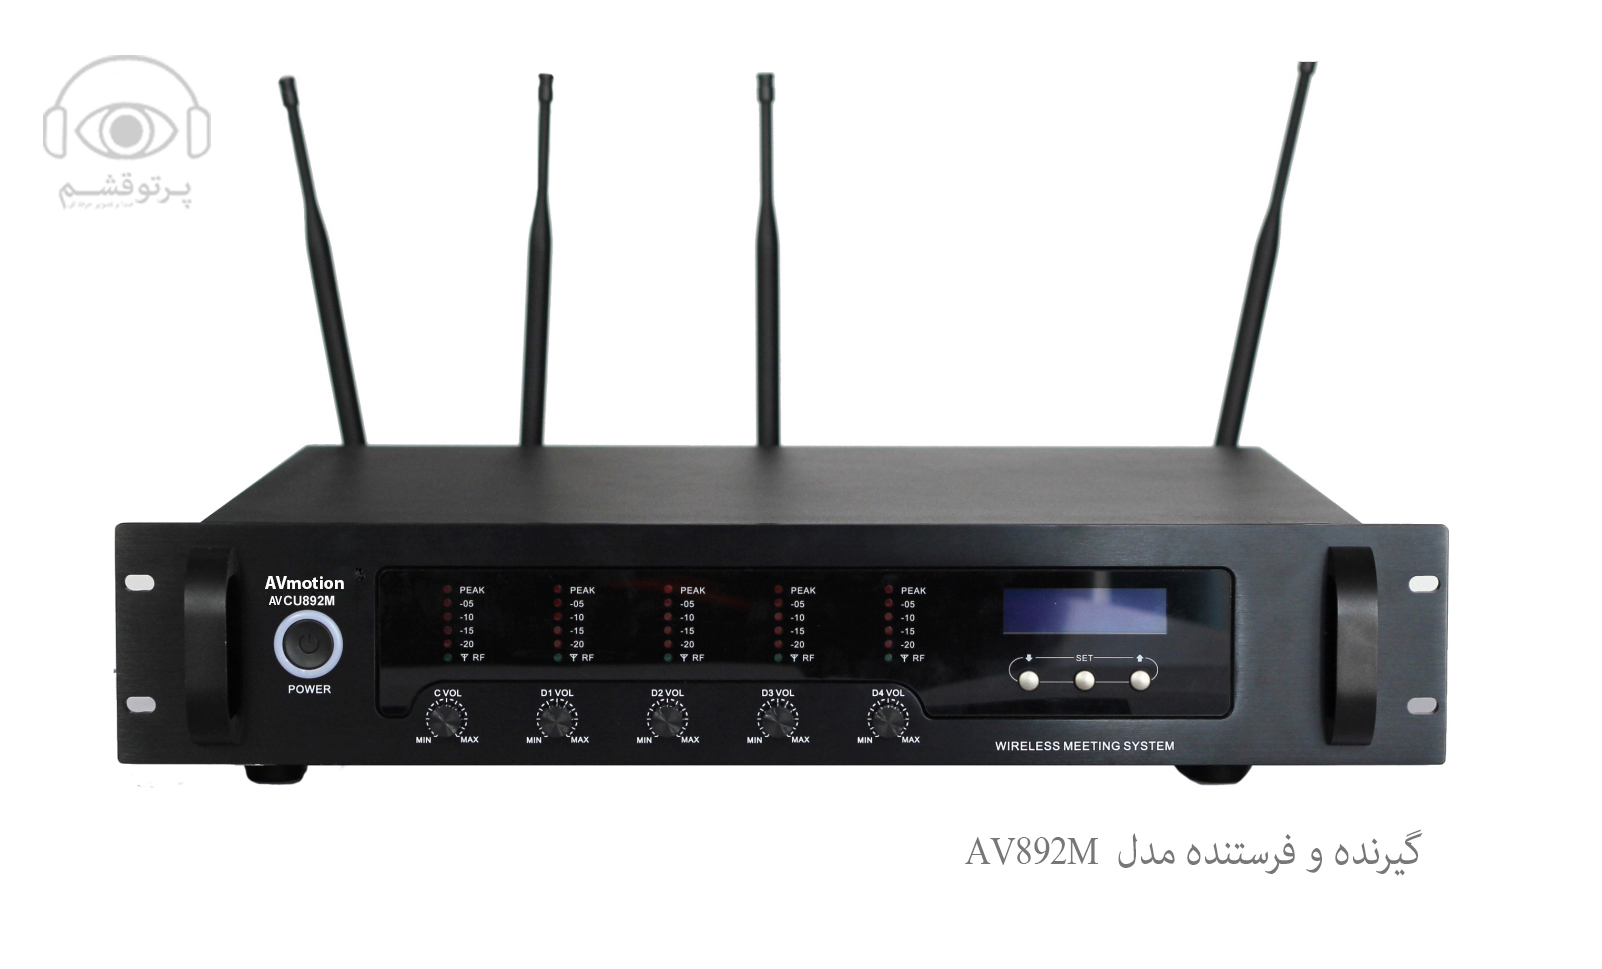 ConferenceSystem-Avmotion-AV892M